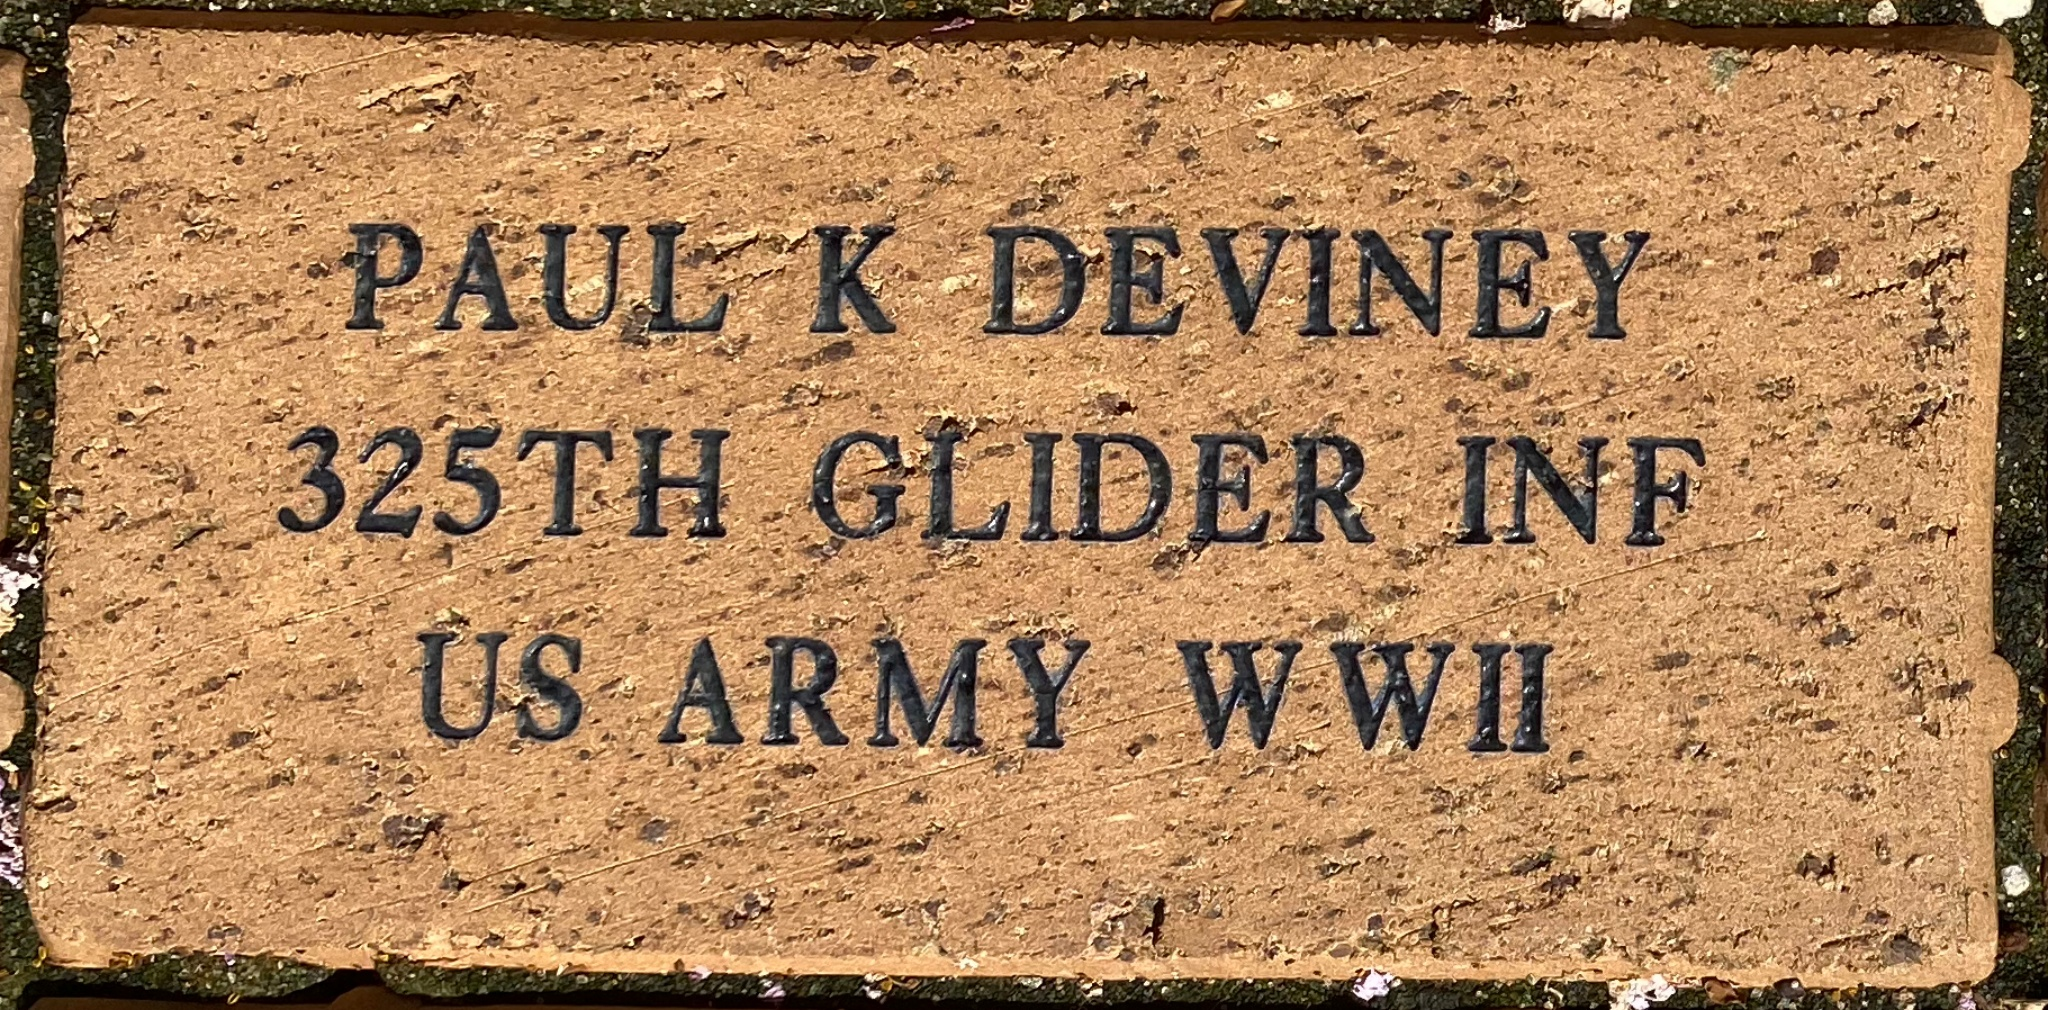 PAUL K DEVINEY 325TH GLIDER INF US ARMY WWII